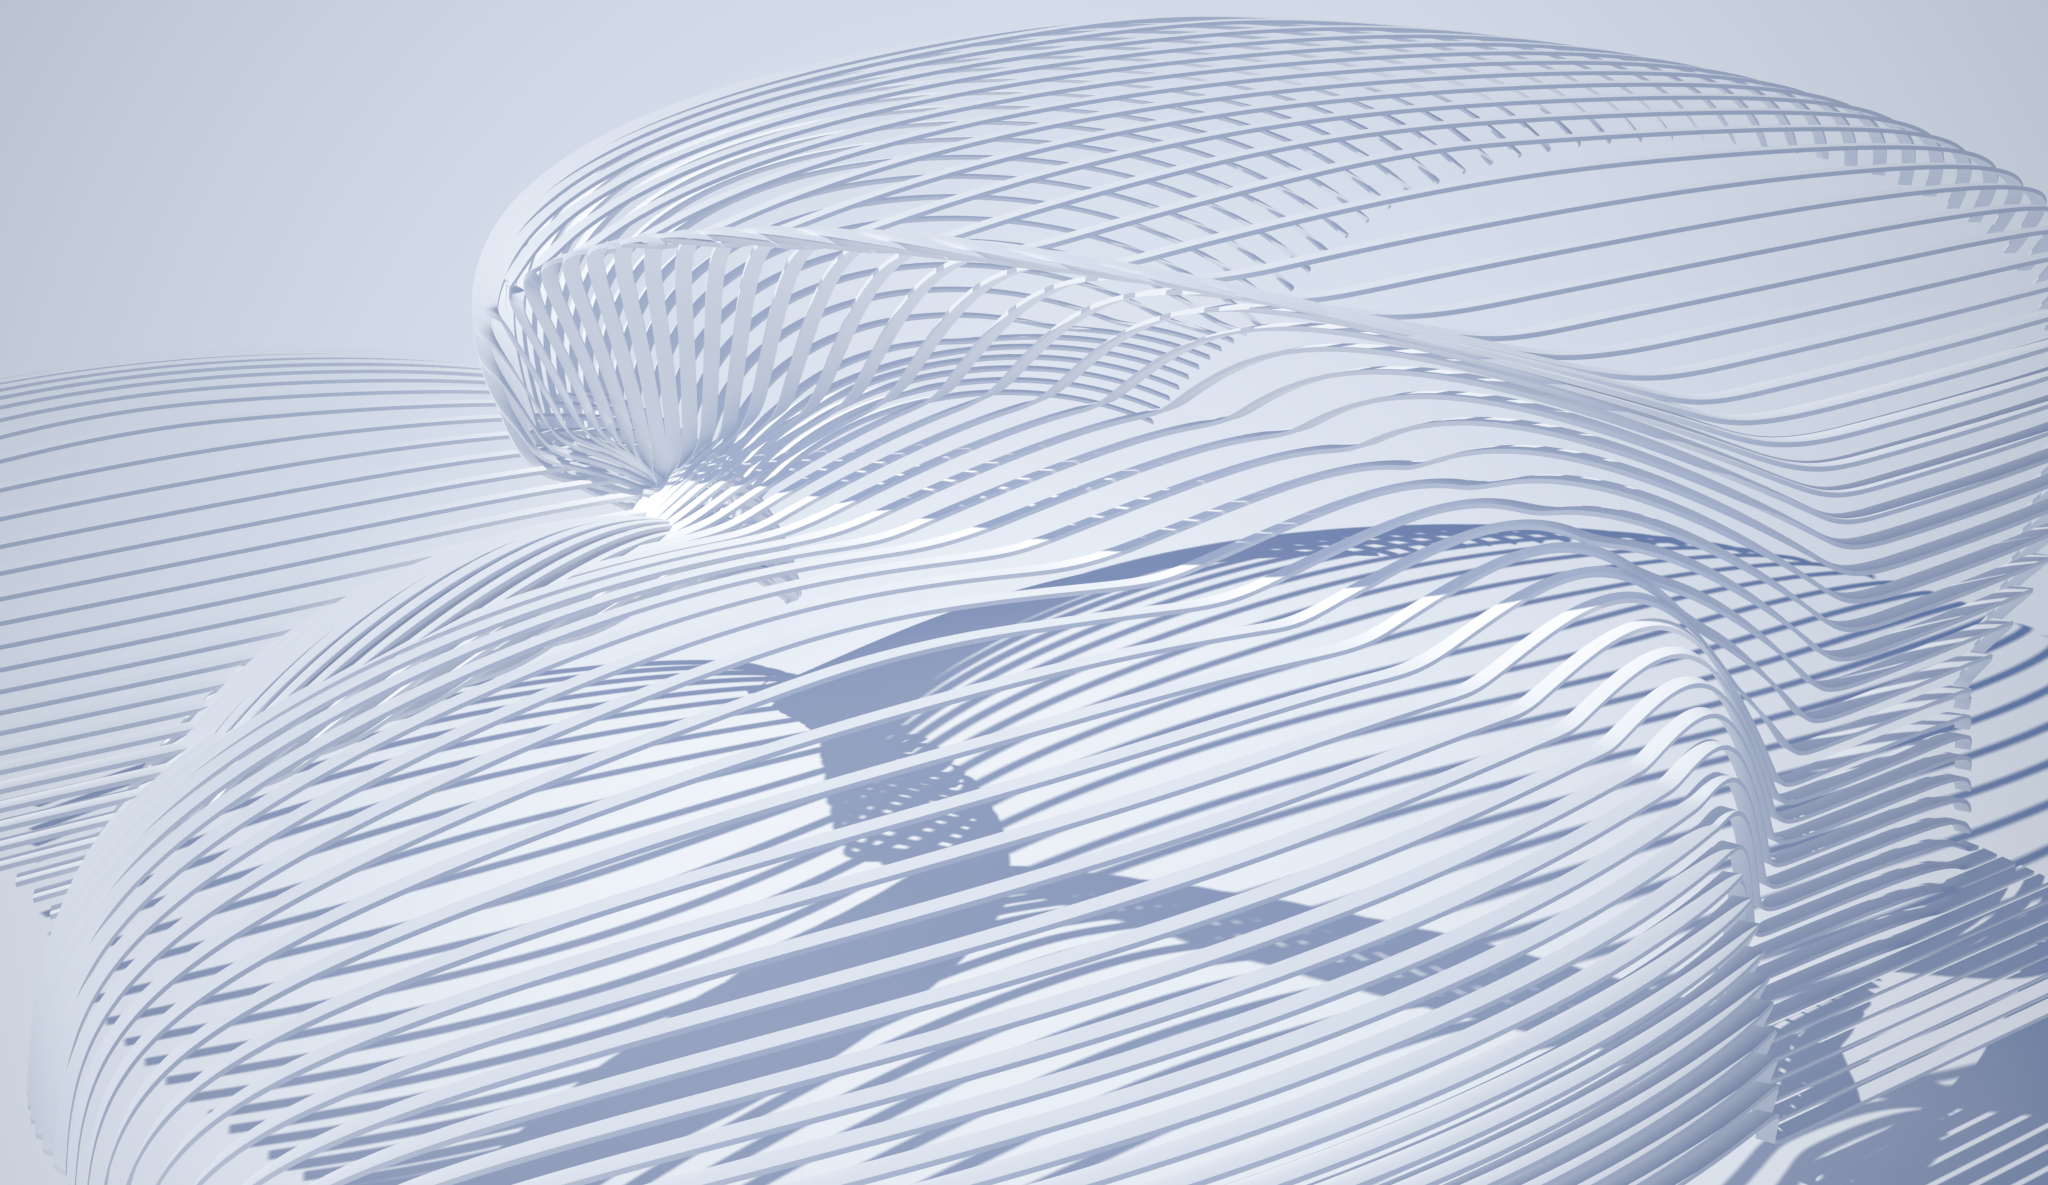 Parametric Design with Grasshopper 応用 Point Attractor2をやってみました